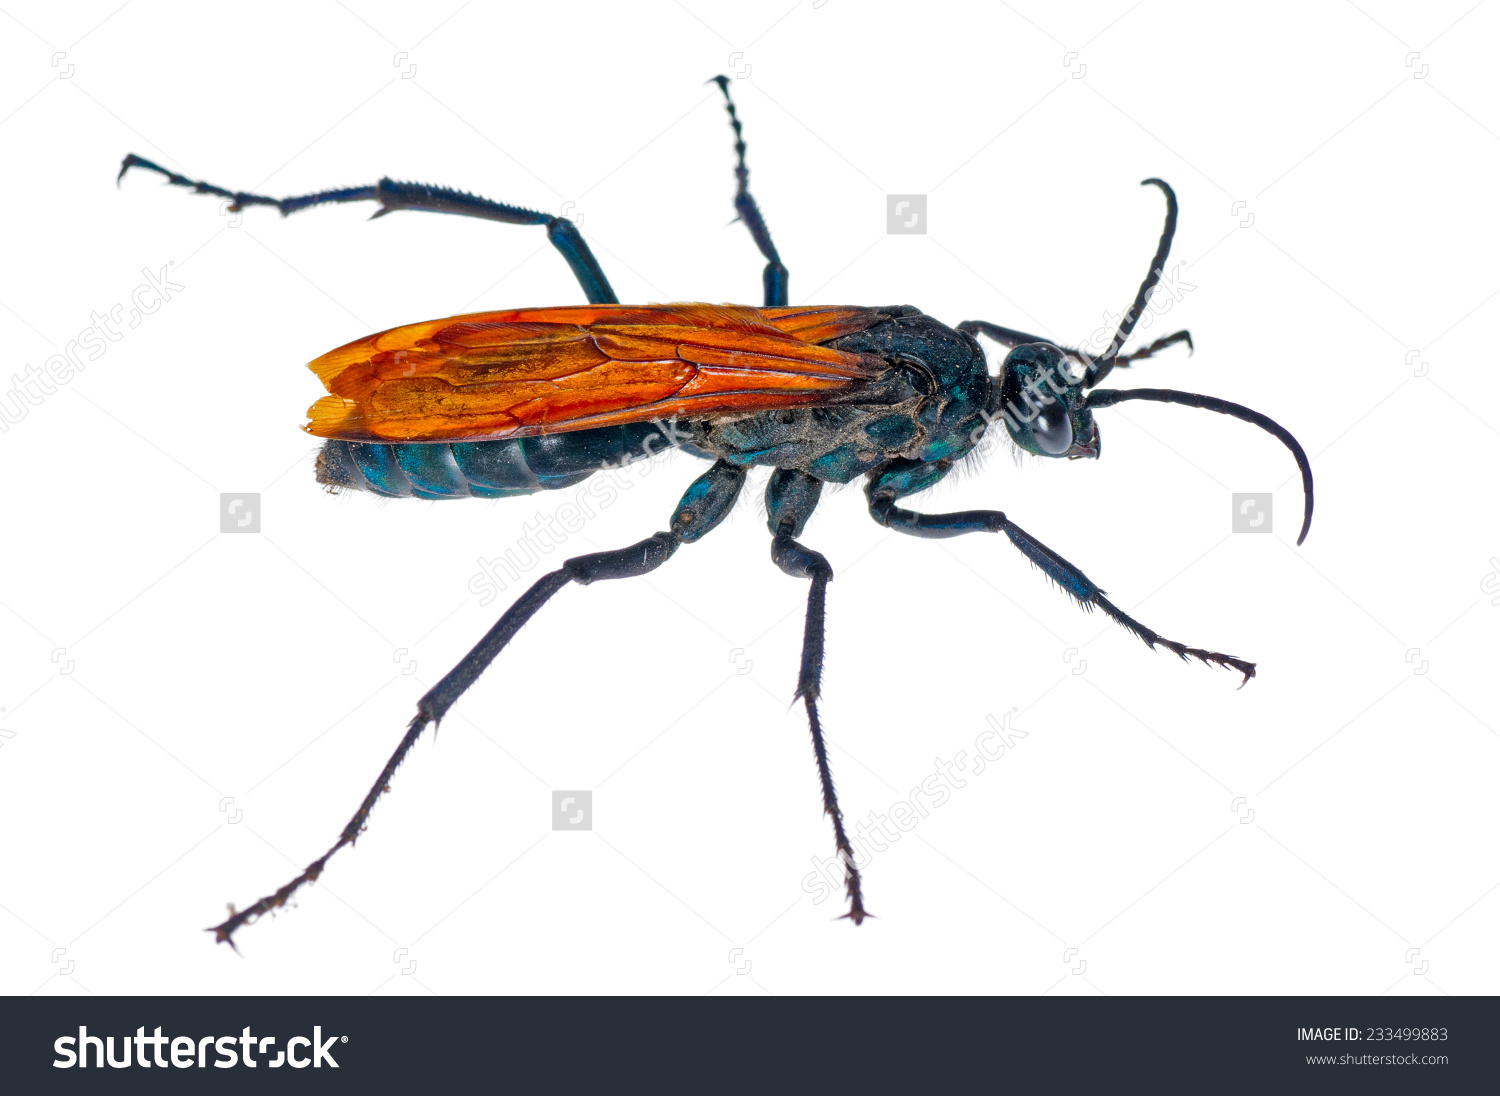 Spider Wasp clipart #11, Download drawings